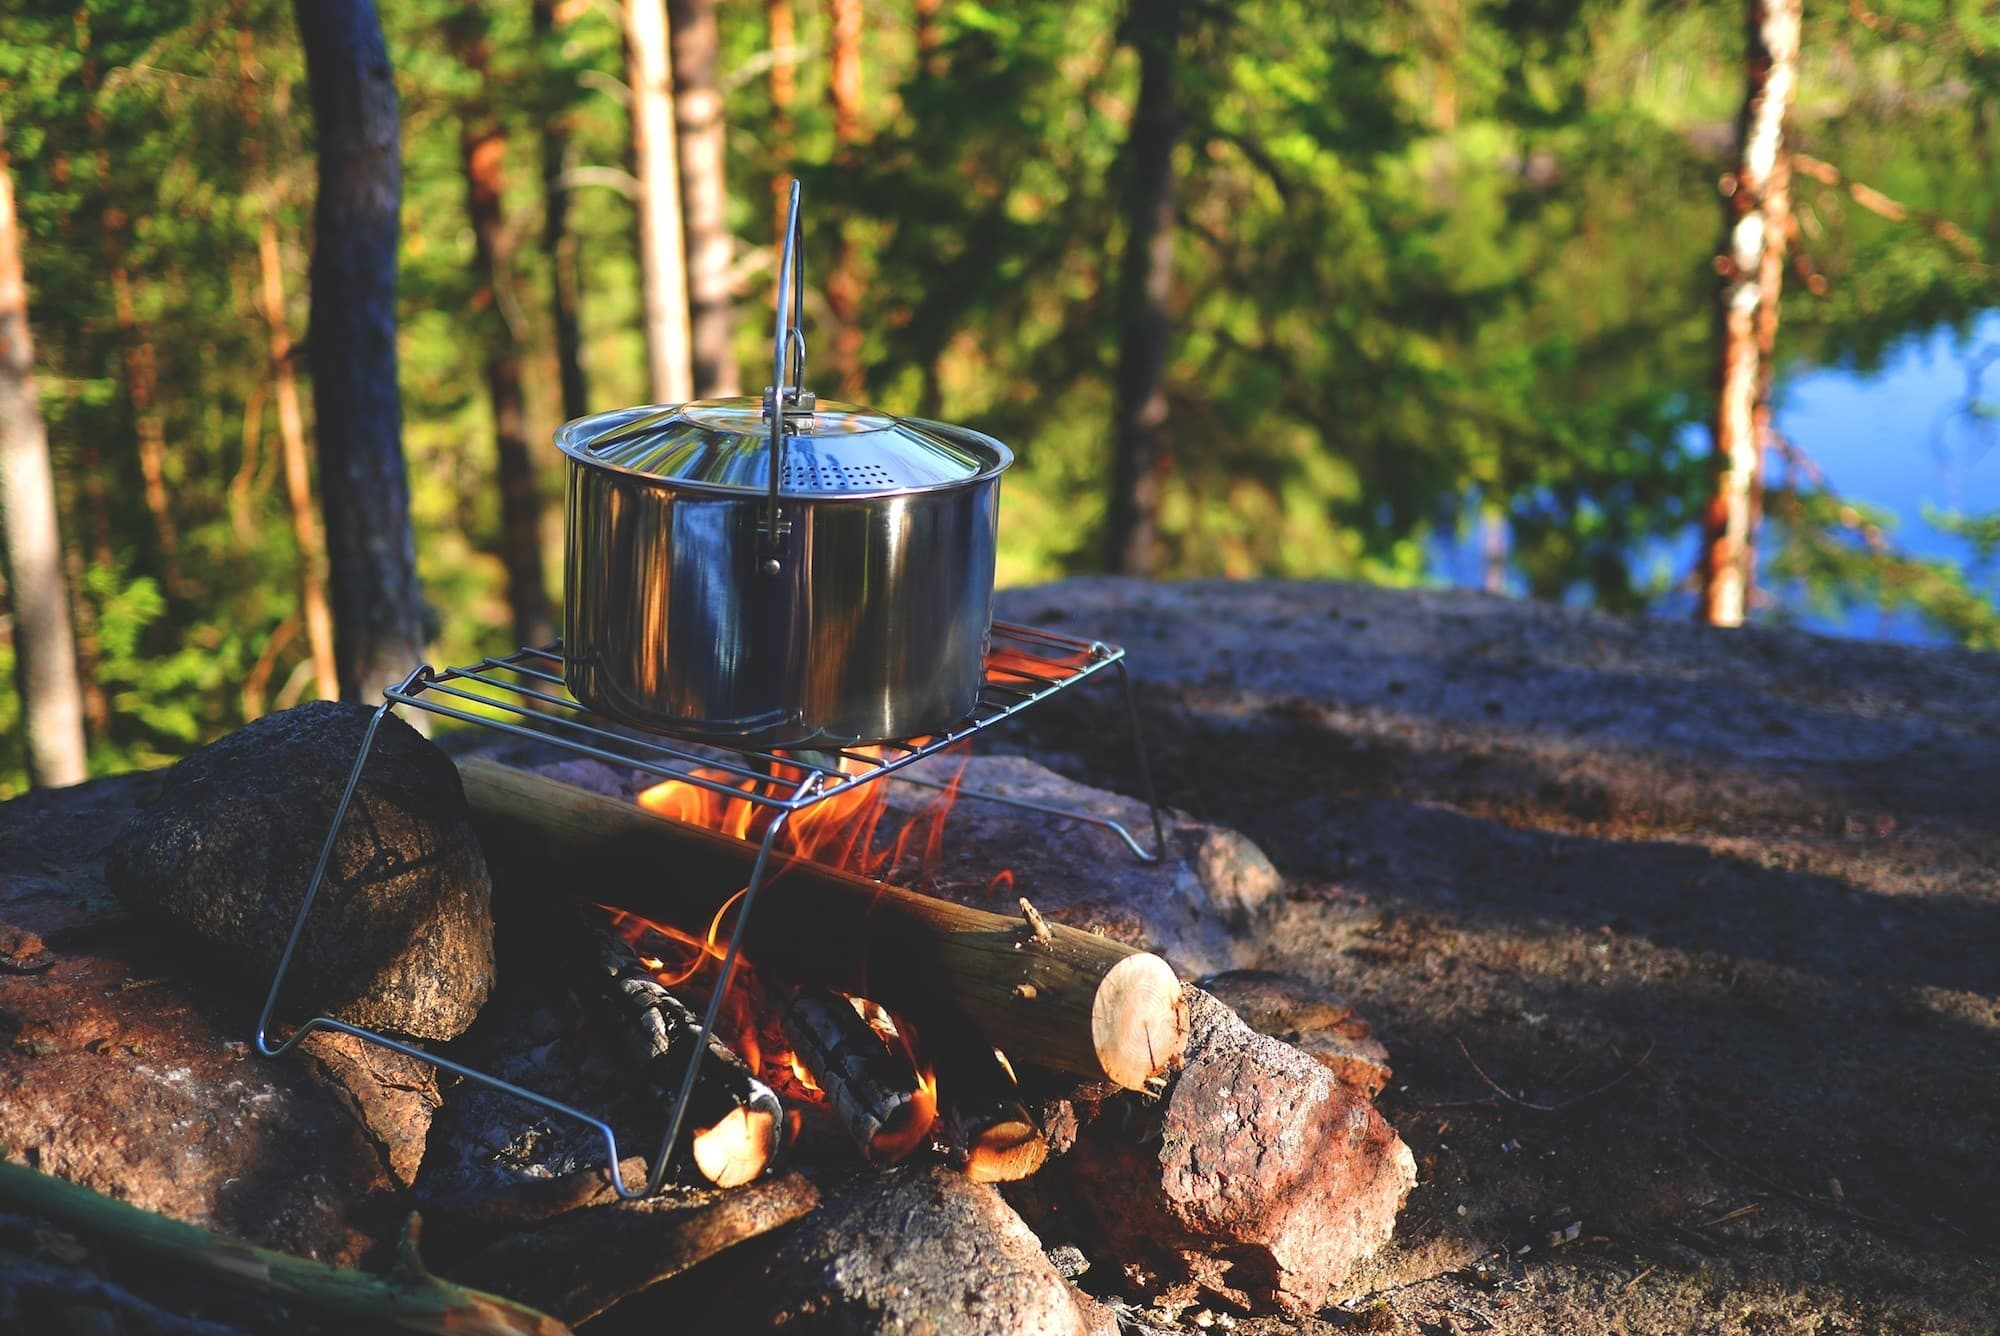 Want to cook in the backcountry? Learn the pros and cons of canister, liquid fuel, and alternative fuel backpacking stoves, plus get tips and our recommendations for choosing the best backpacking stove for your adventures.